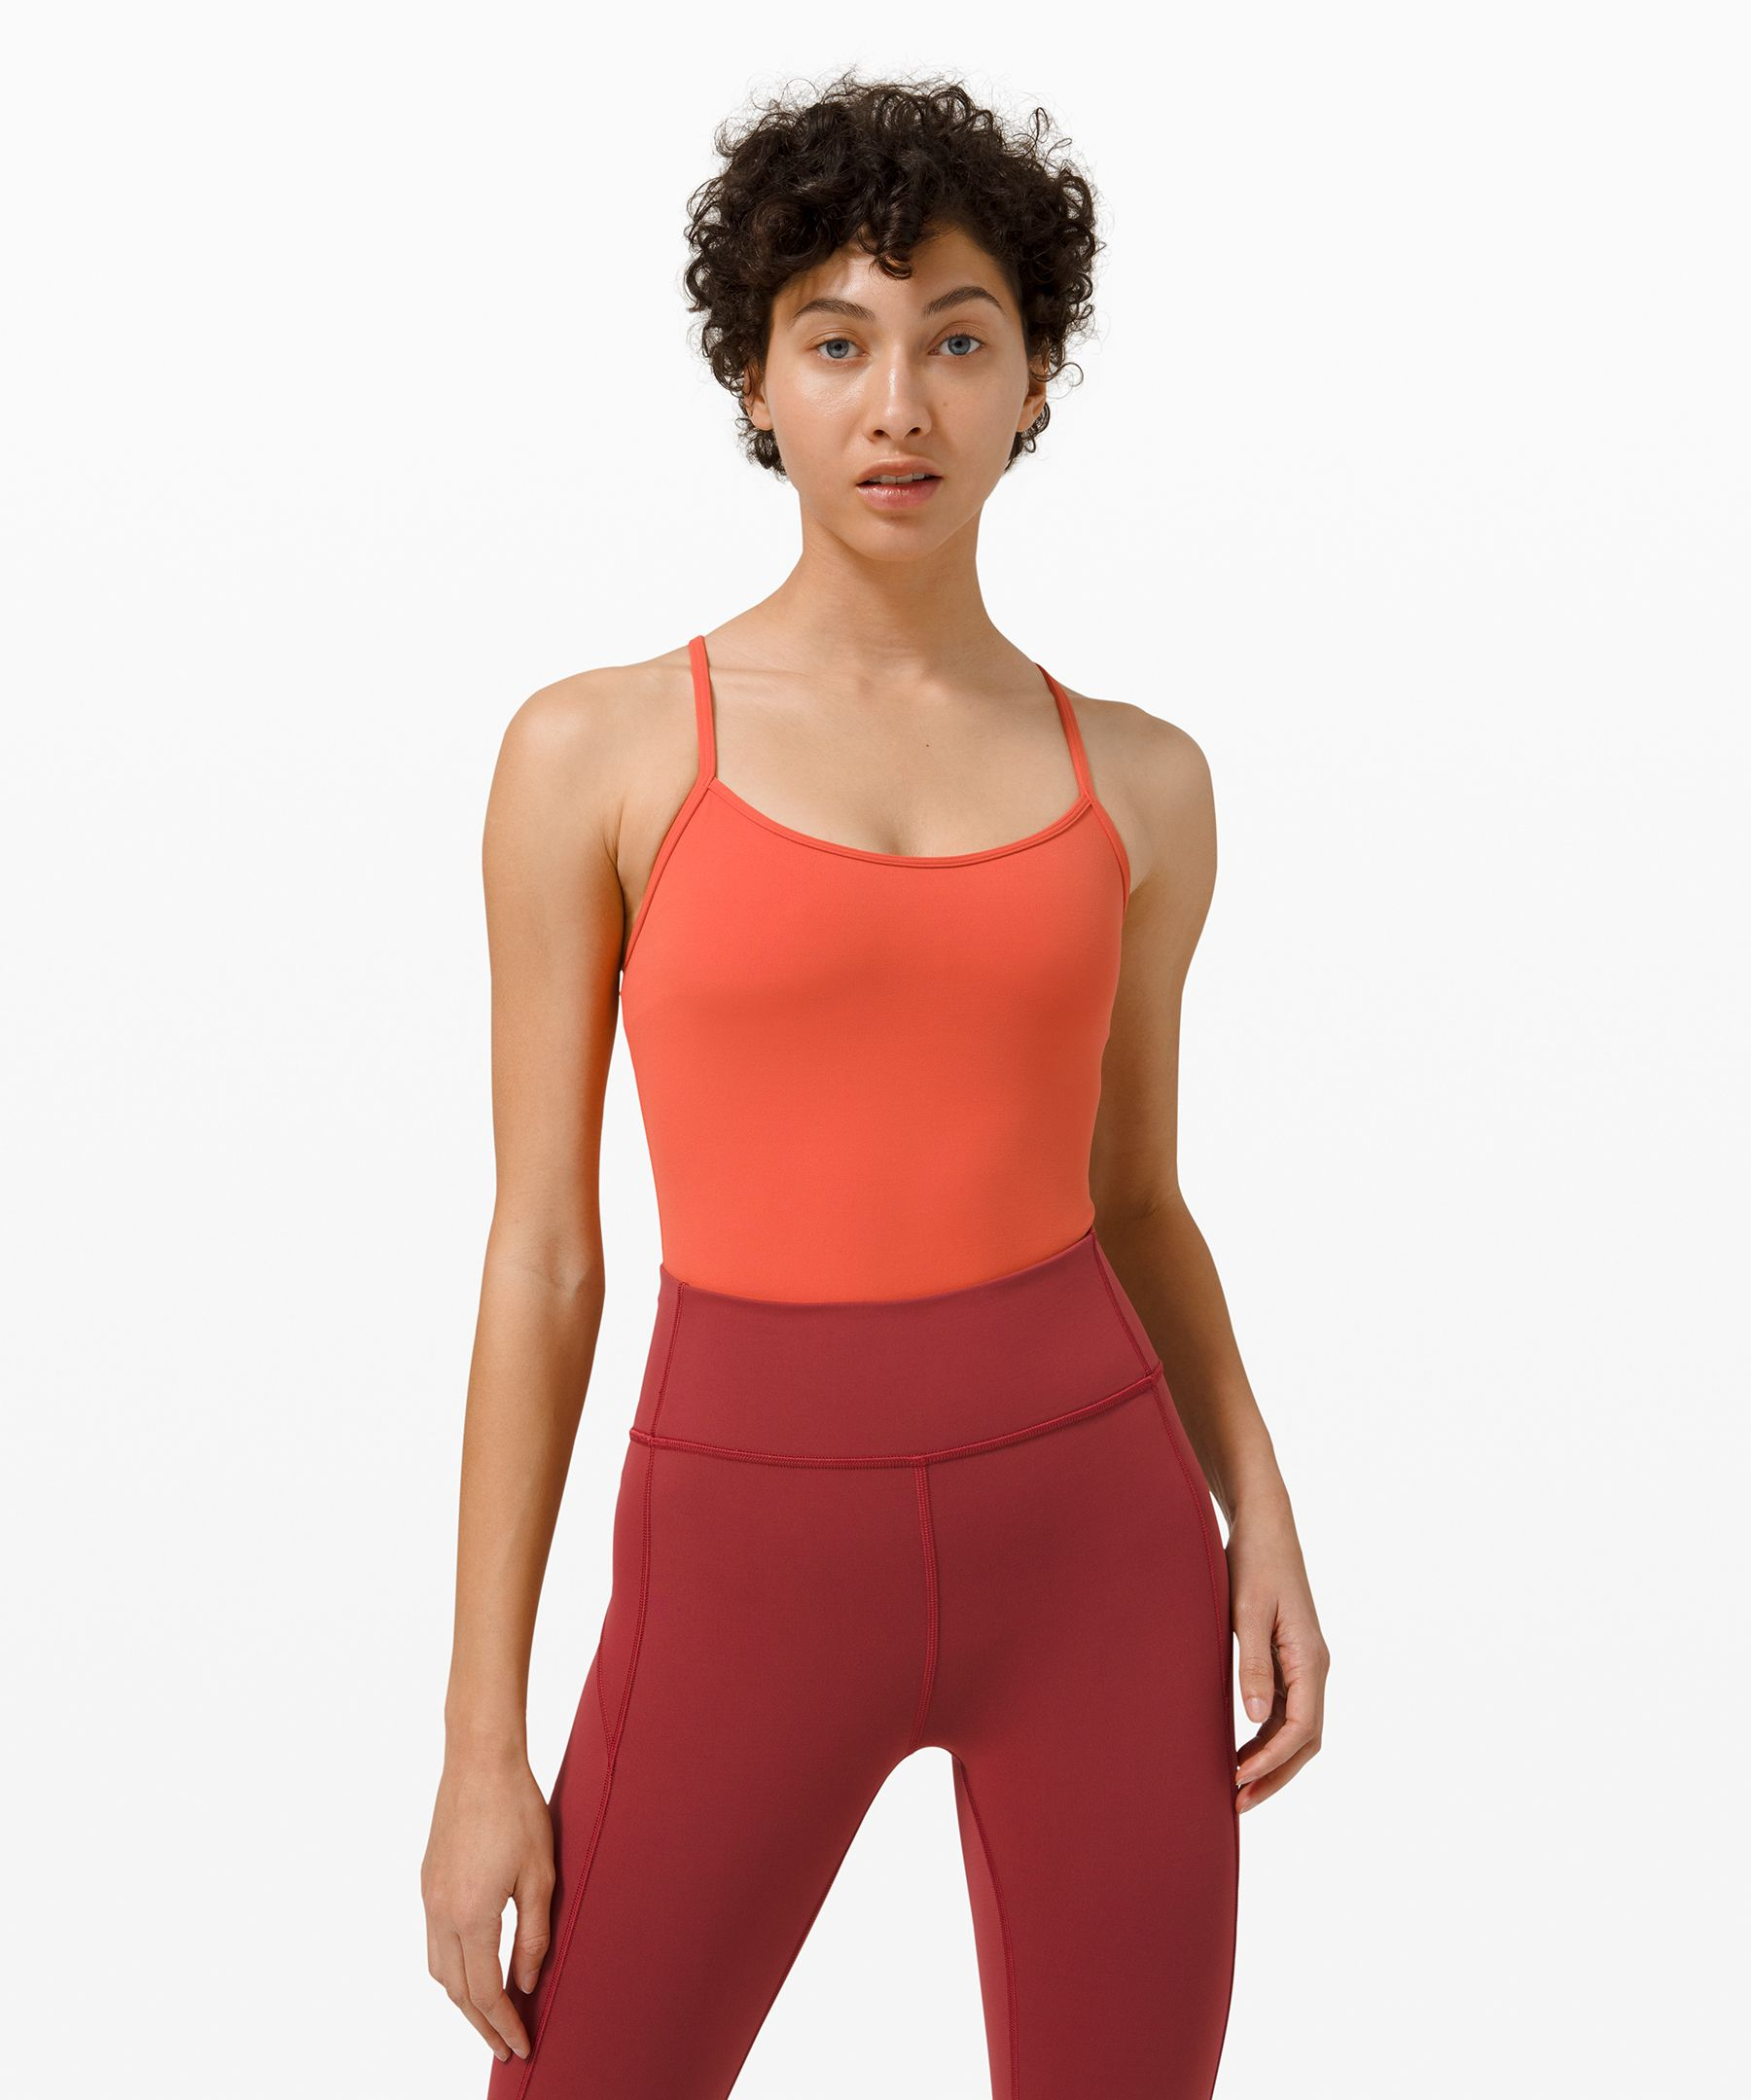 Flow freely through yoga and  studio training classes in  this skinny-strapped bodysuit  with built-in support.